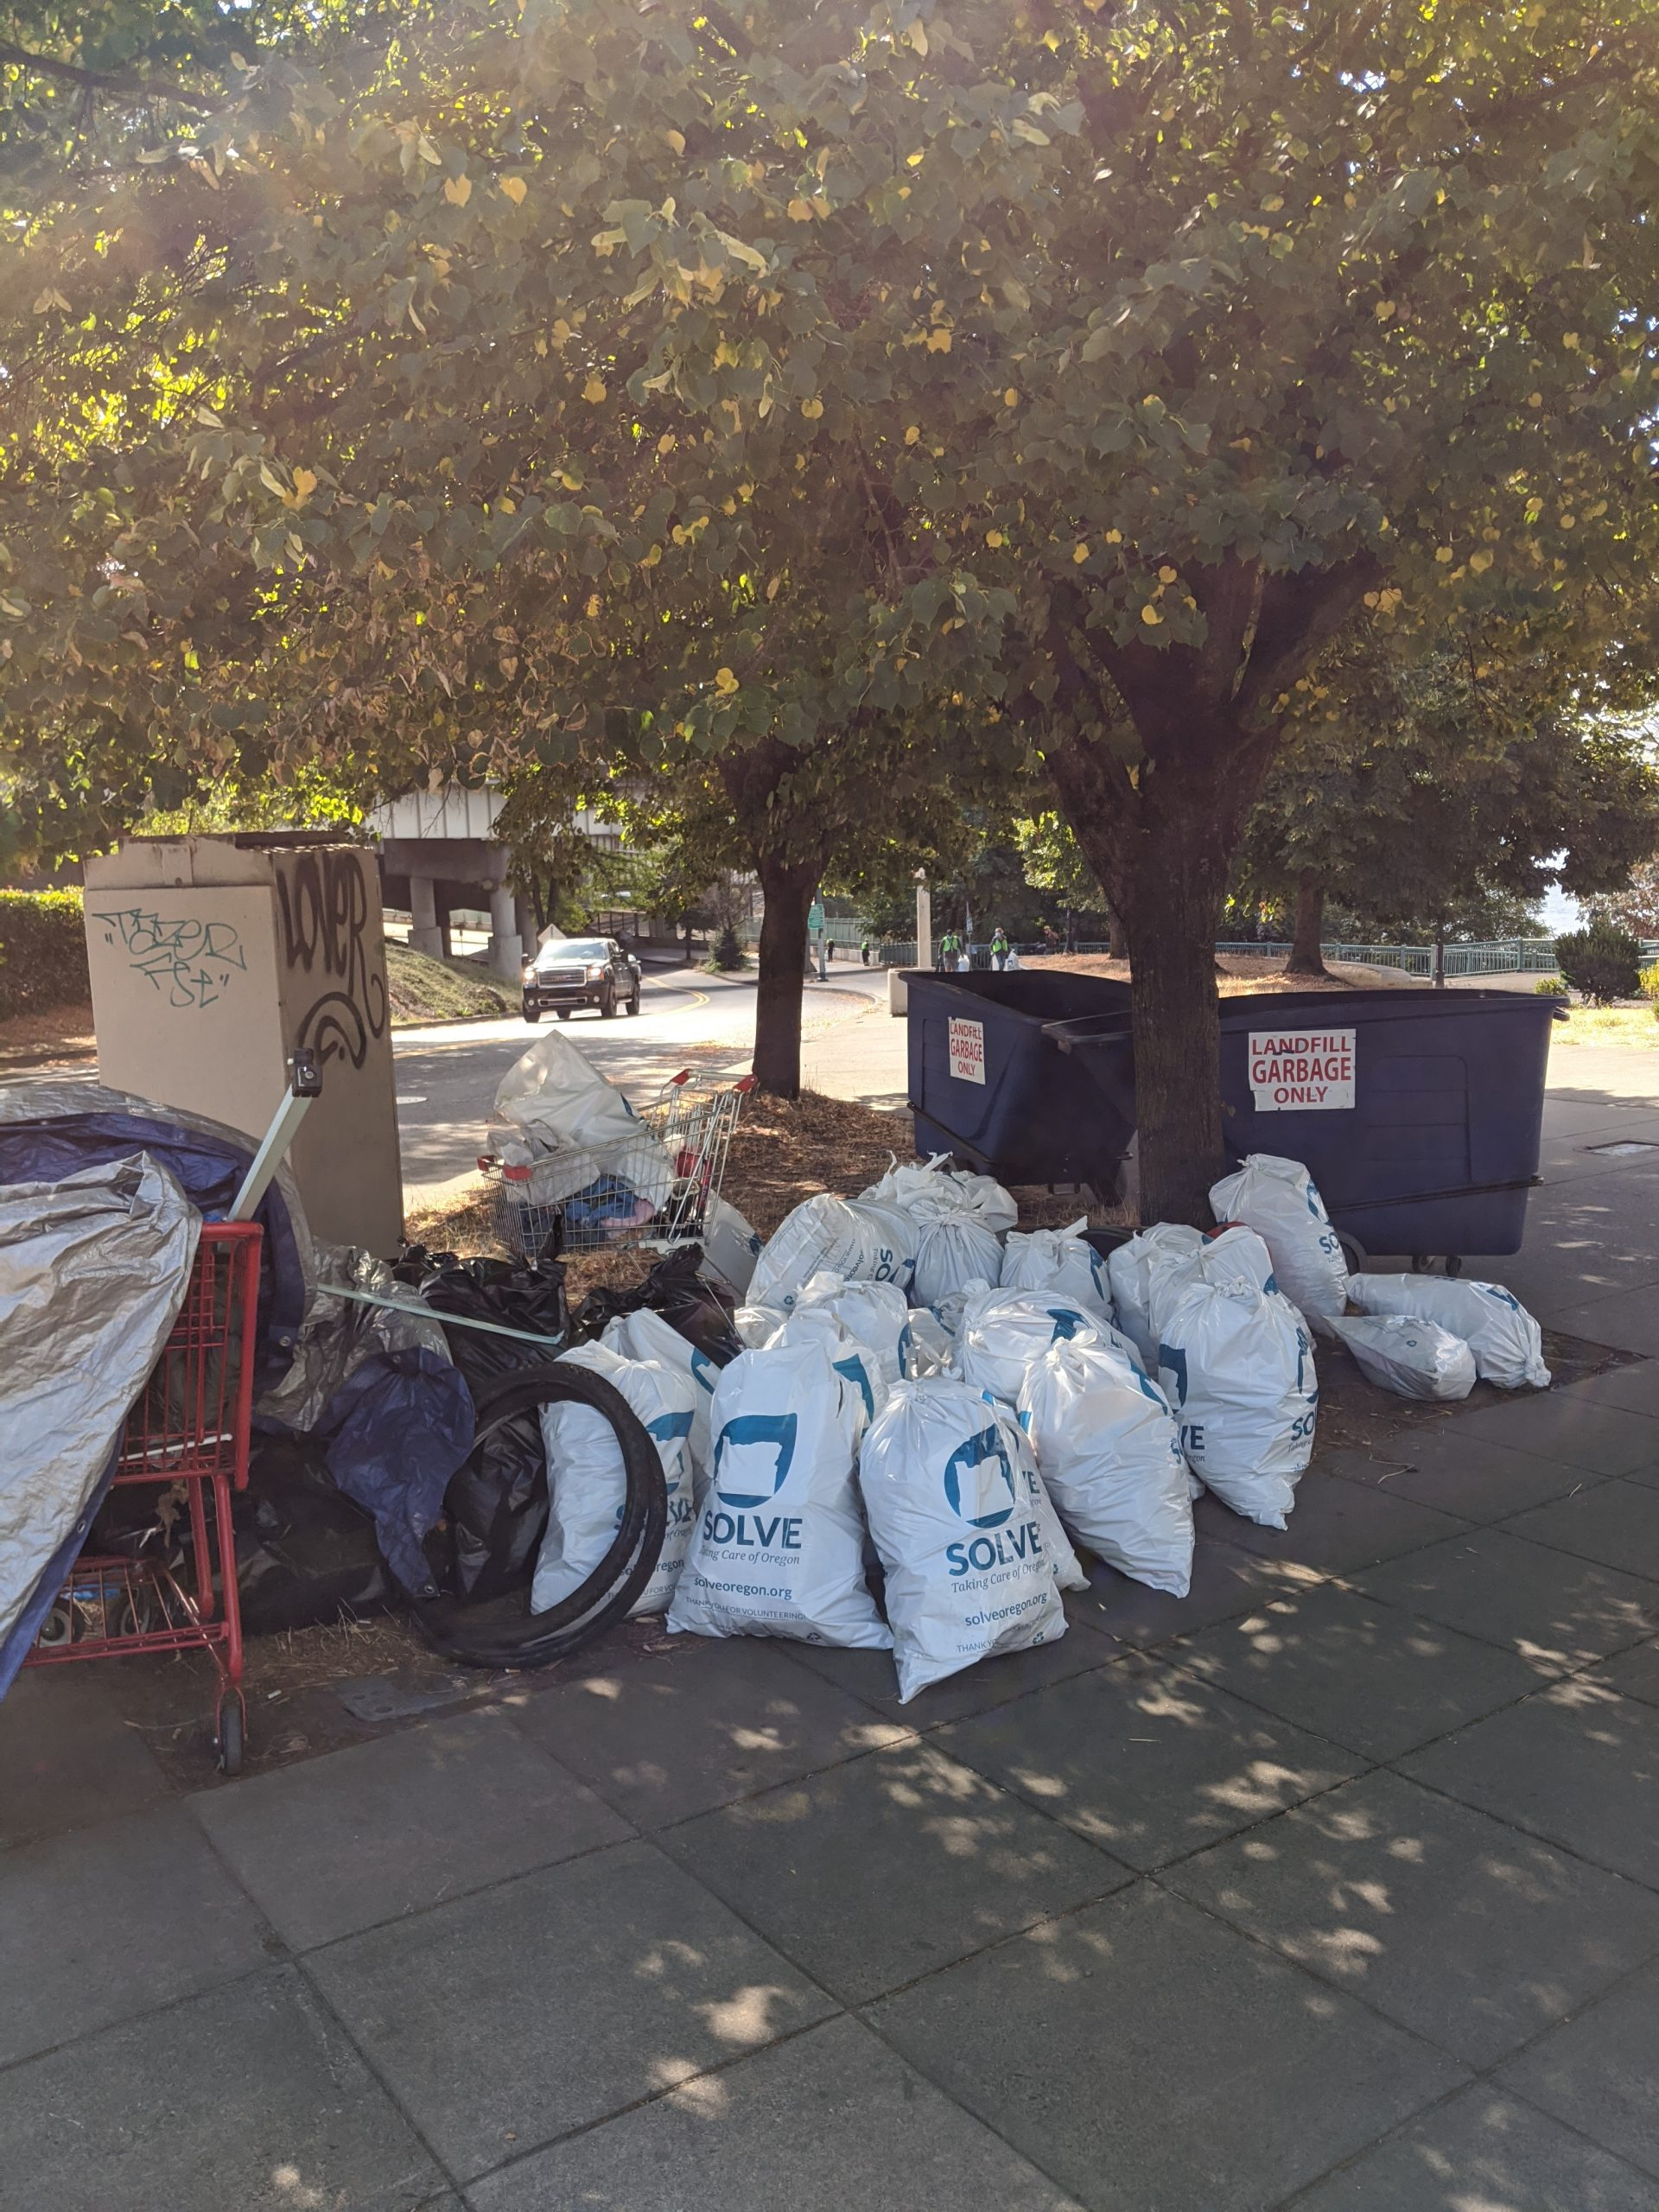 Thank you to the Convention Center for helping us dispose of all the garbage!